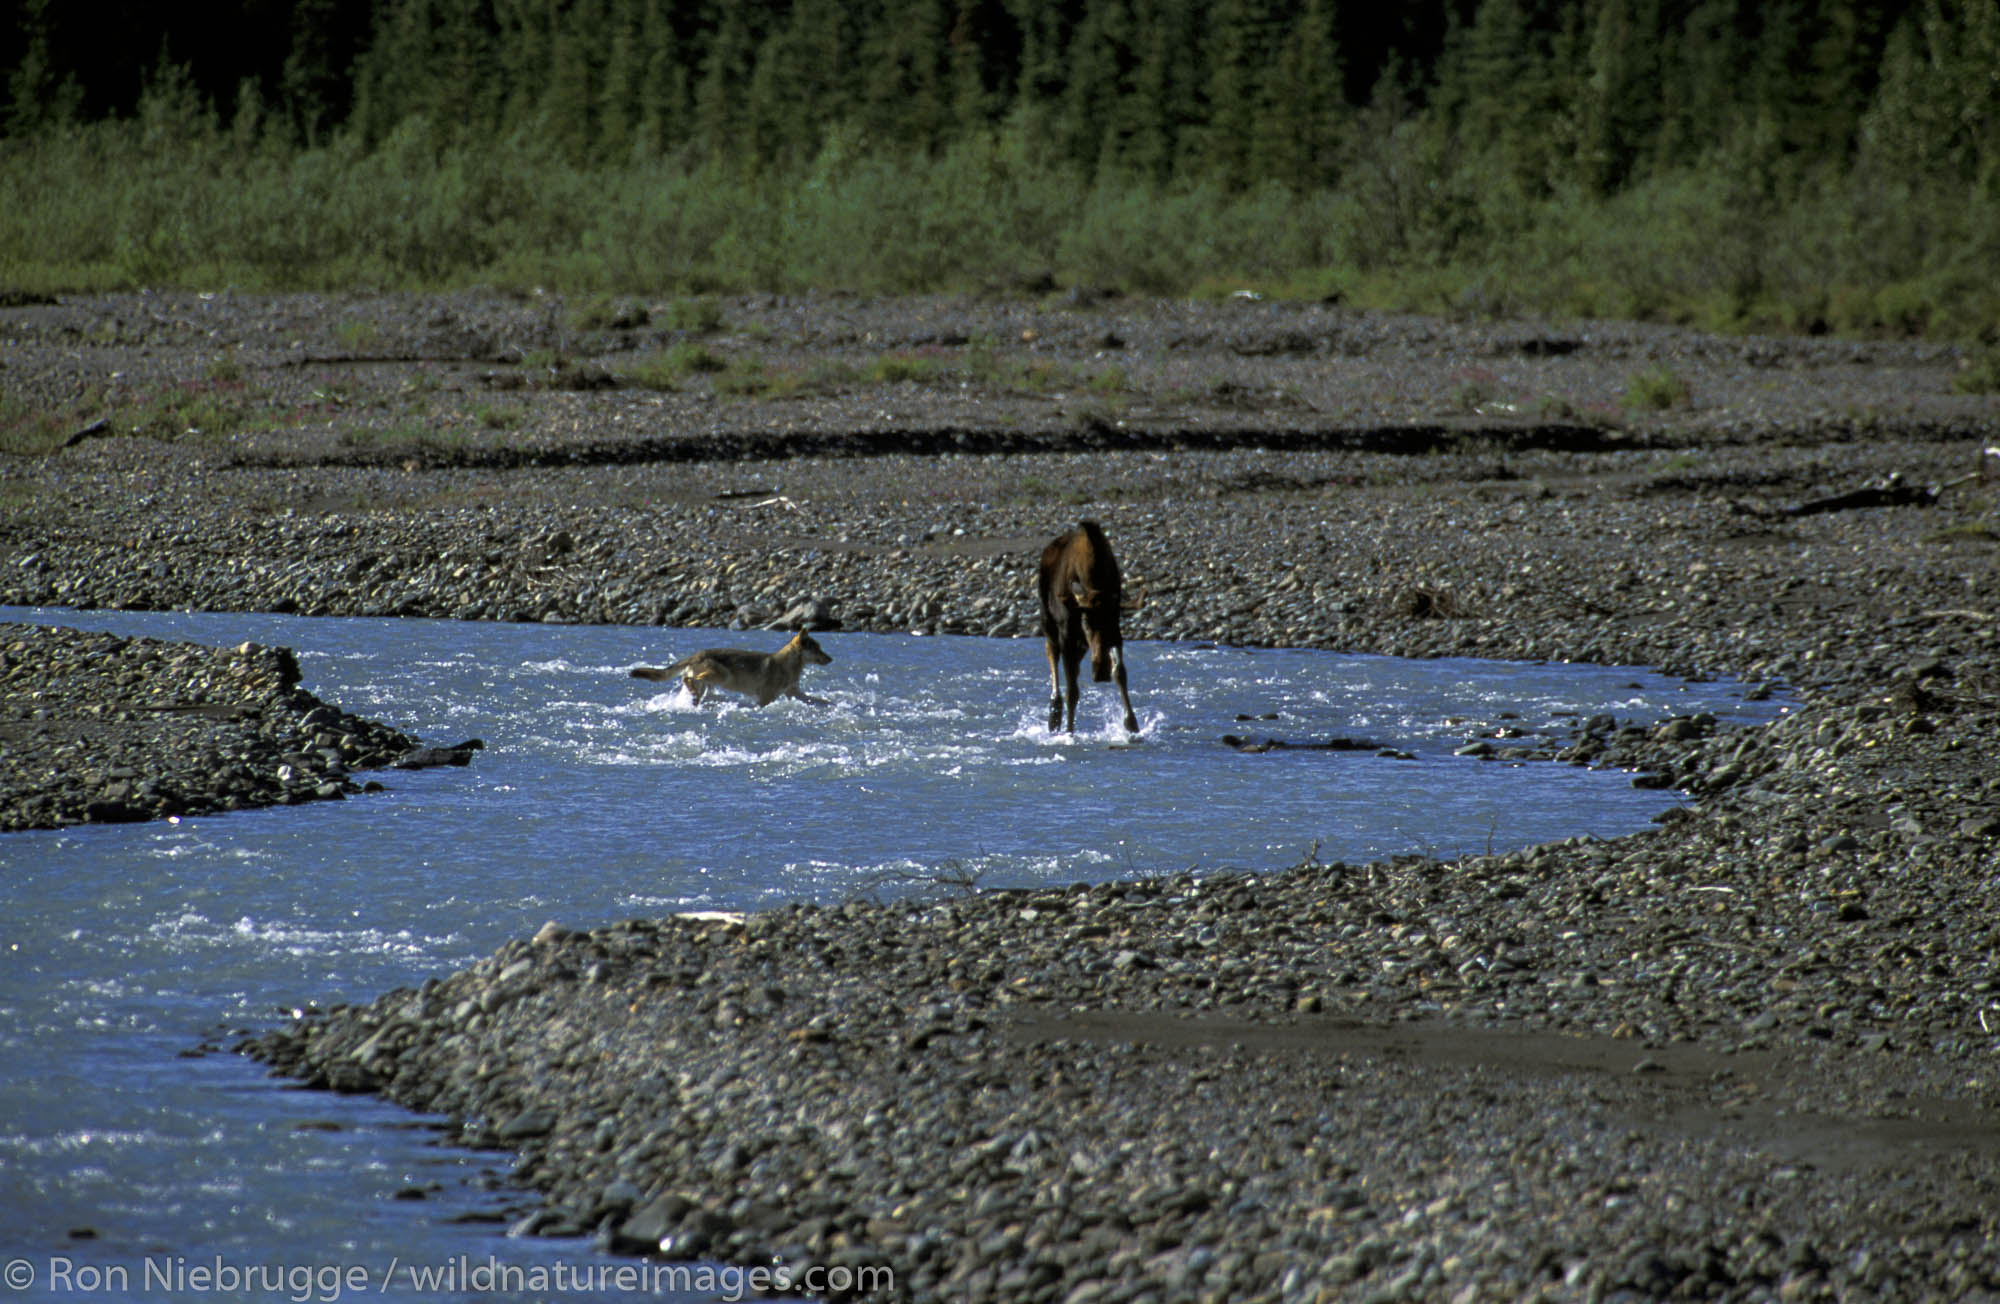 A wild wolf chases a young bull moose in the Teklanika River, Denali National Park, Alaska.